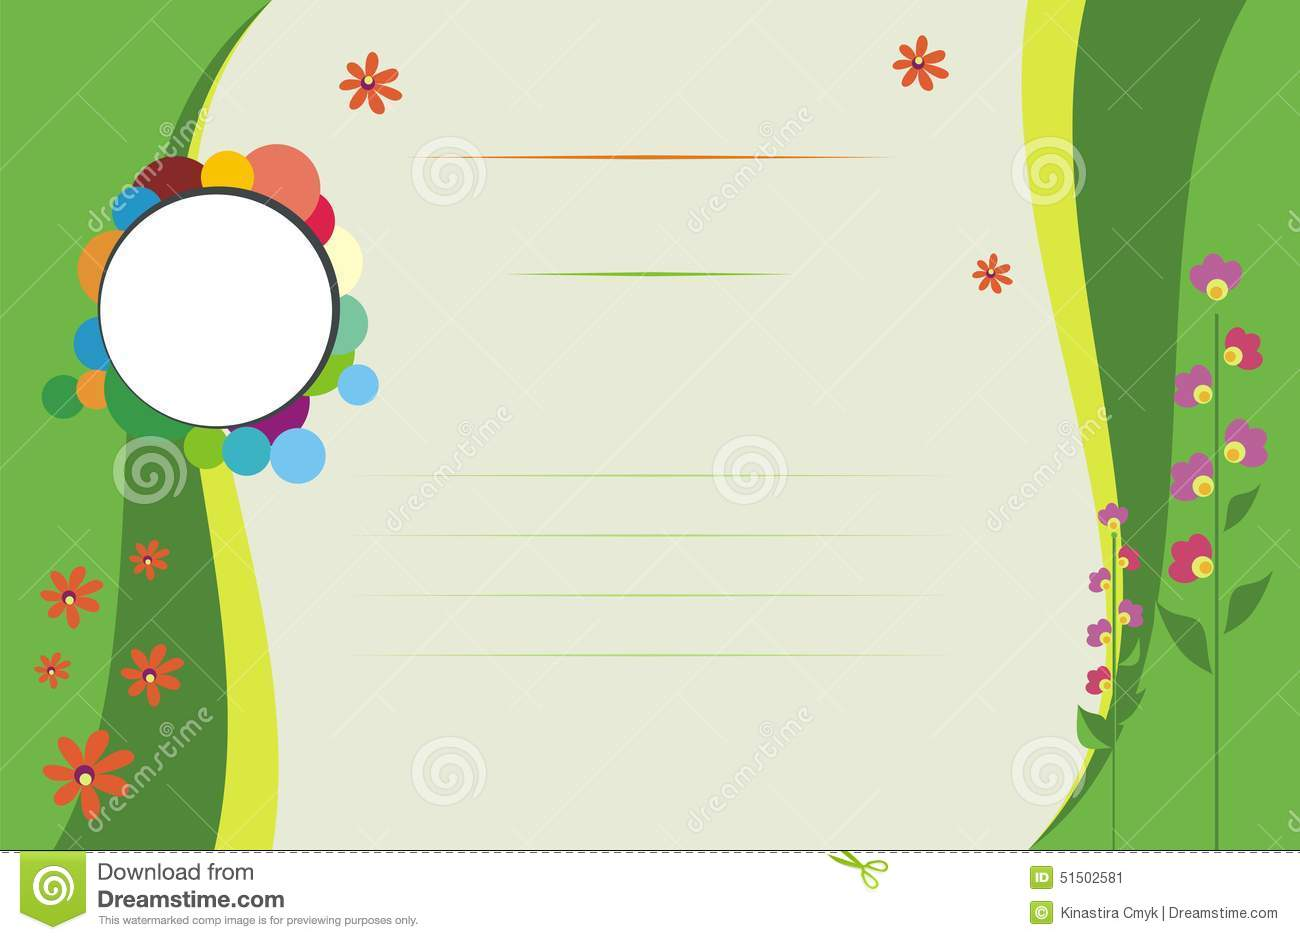 Awards clipart borders.  collection of high